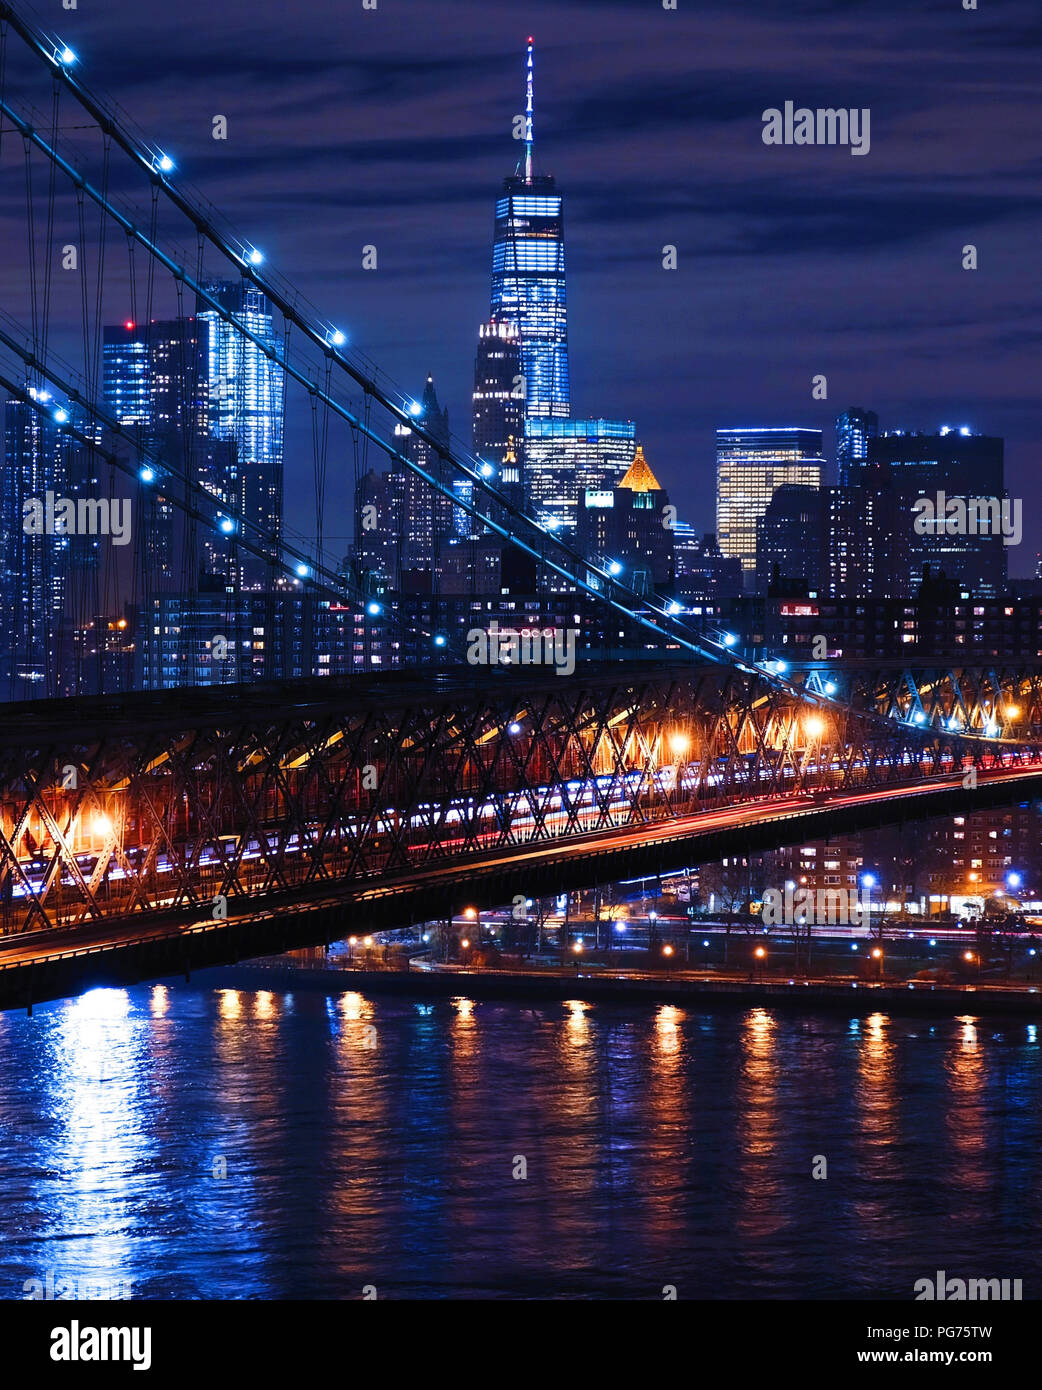 Night Time New York City Lights Stock Photo Alamy